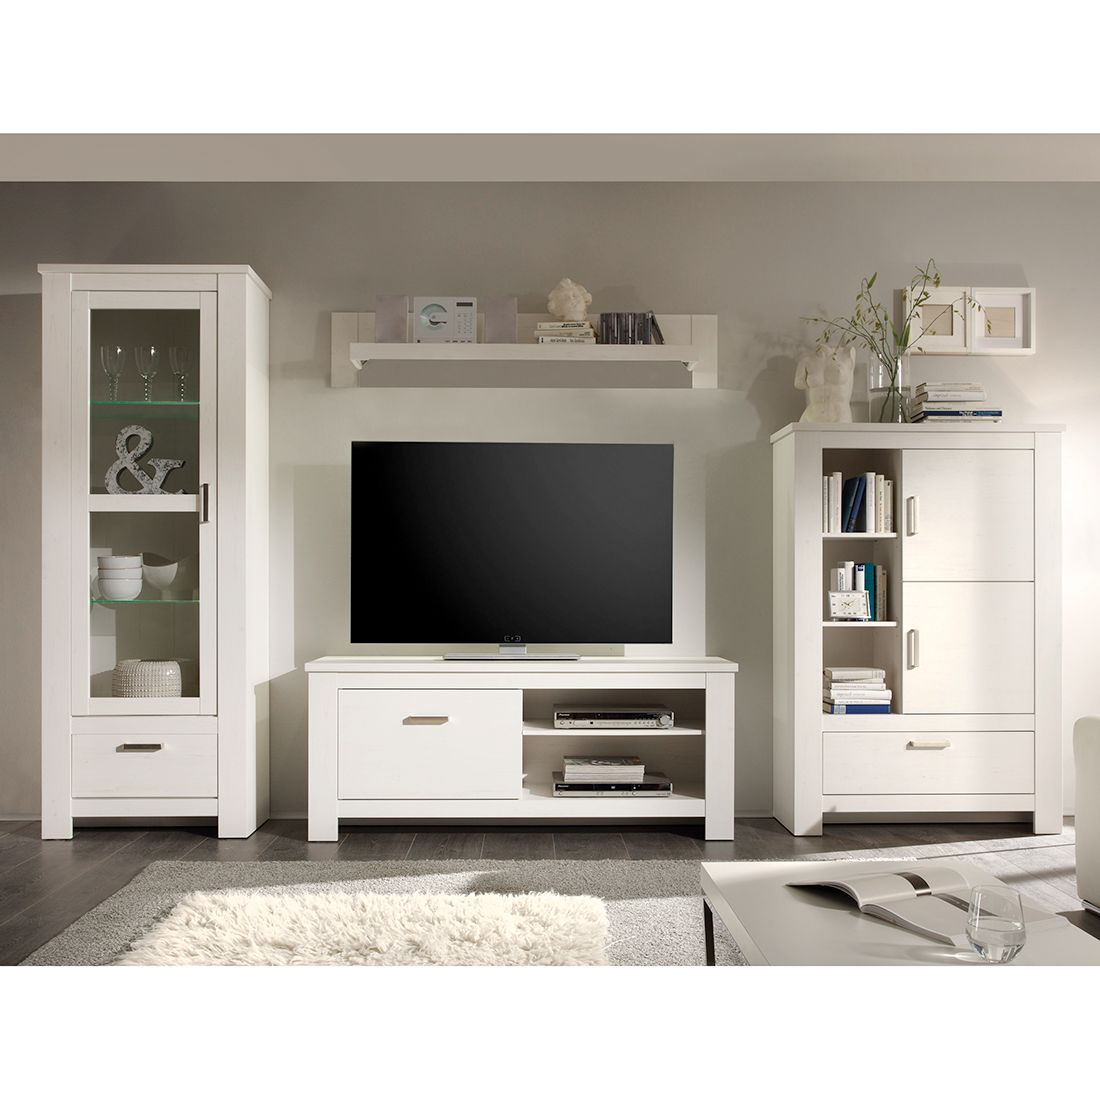 wohnwand rostock 4 teilig iii ohne beleuchtung pinie wei dekor kerkhoff online bestellen. Black Bedroom Furniture Sets. Home Design Ideas